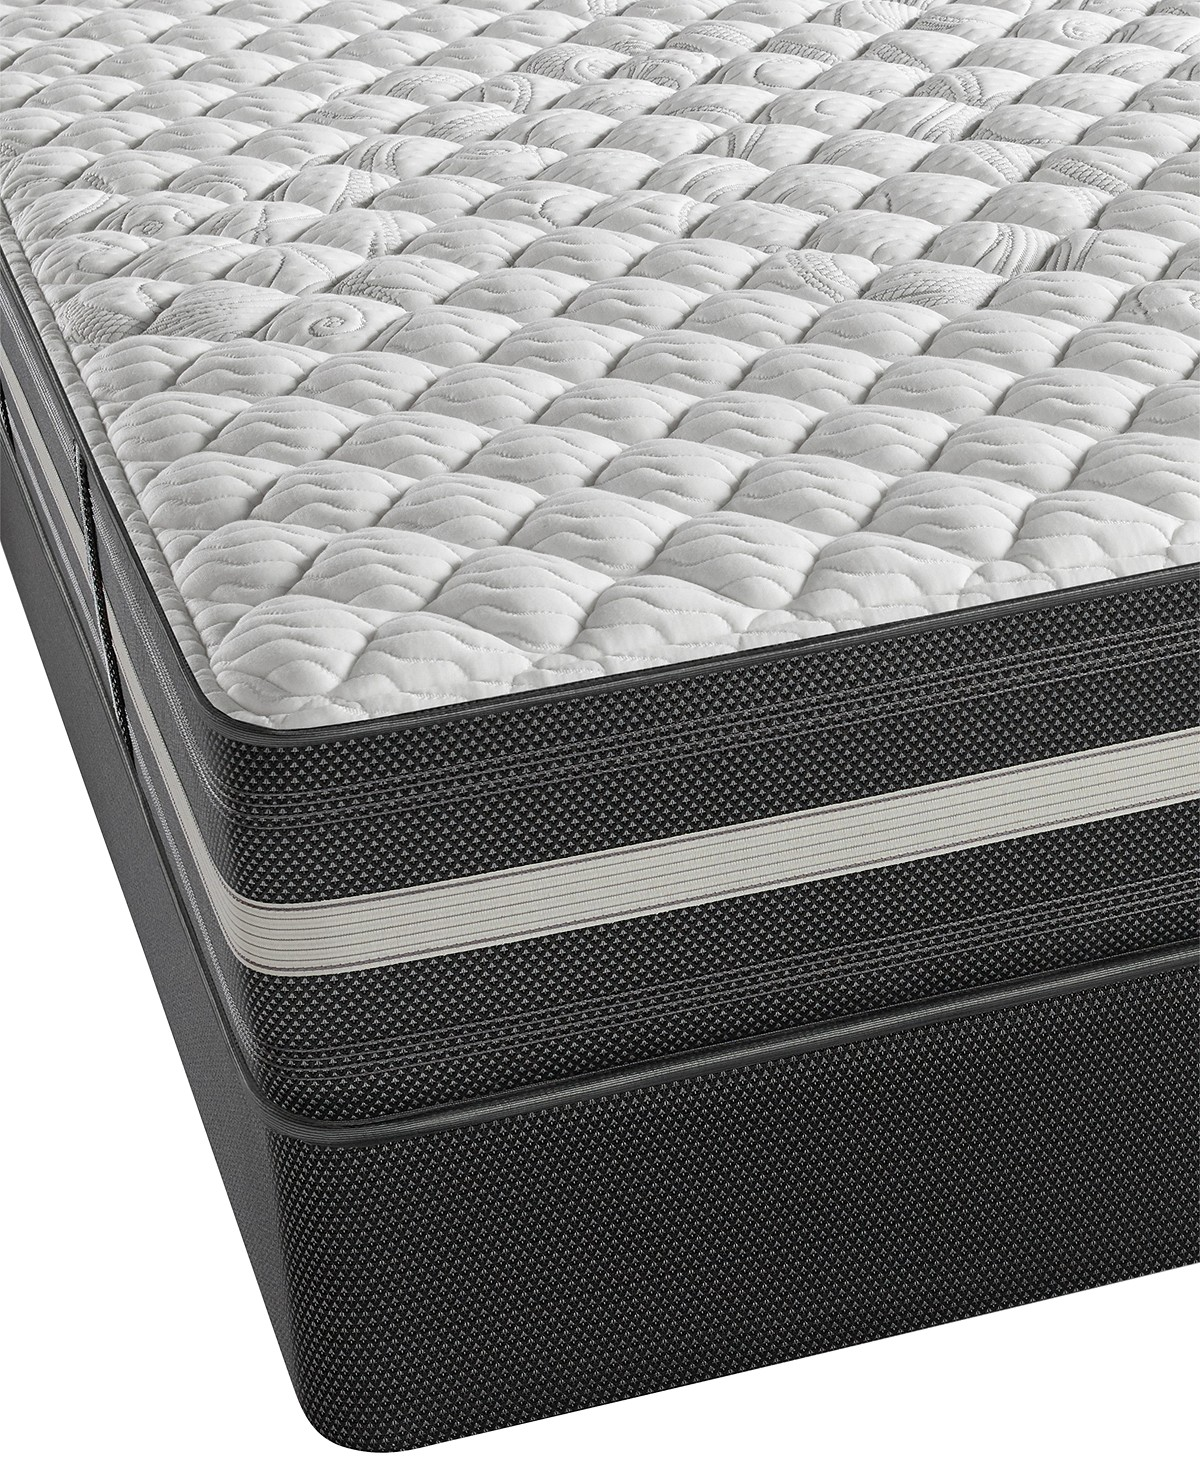 after i visited stores to test a few mattresses i was sure i wanted to stick with a traditional wrapped coil mattress and i like a firm mattress - Best Time To Buy A Mattress